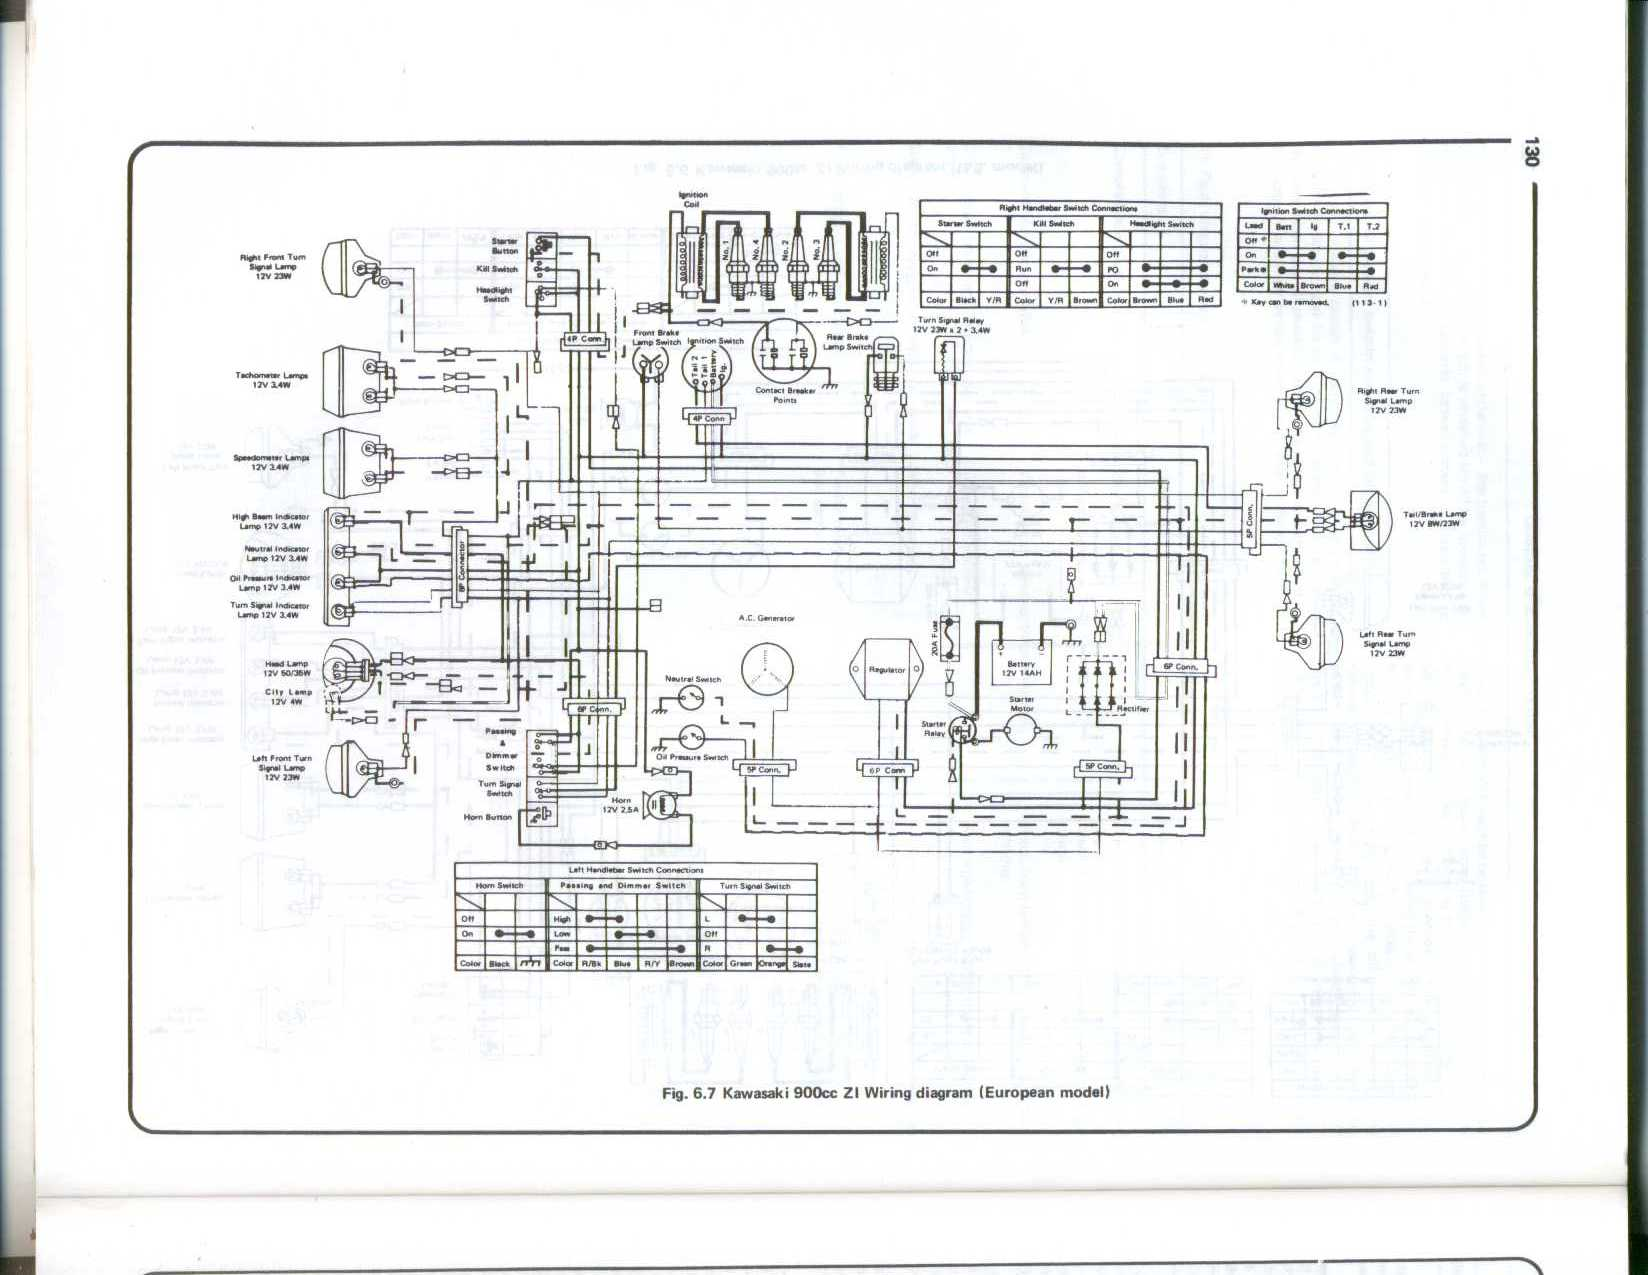 2012 Vulcan 900 Wiring Diagram Schematic Schematics Diagrams Kawasaki Vn900 For A Motorcycle 750 Ignition System 1500